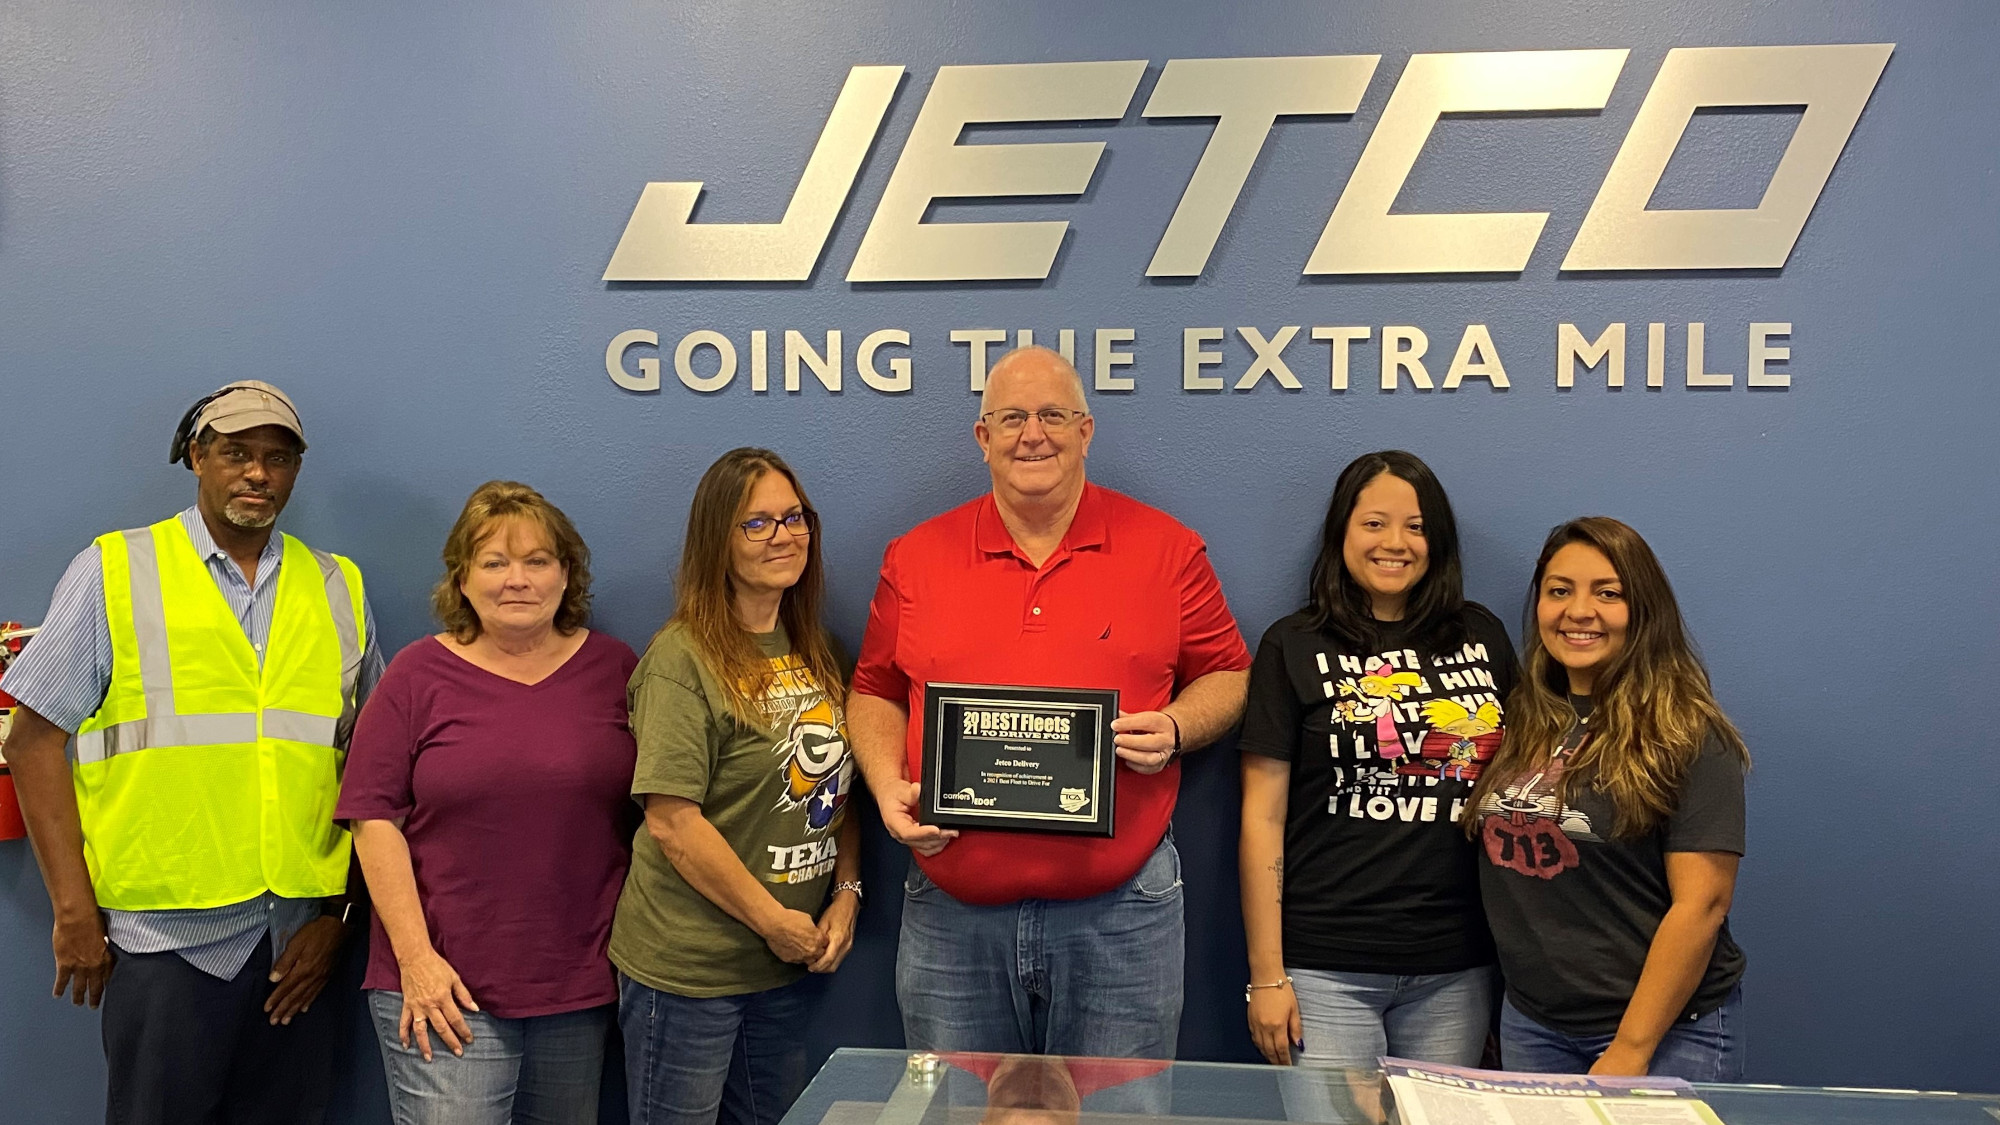 FreightWaves Highlights Jetco As A Best Fleet To Drive For